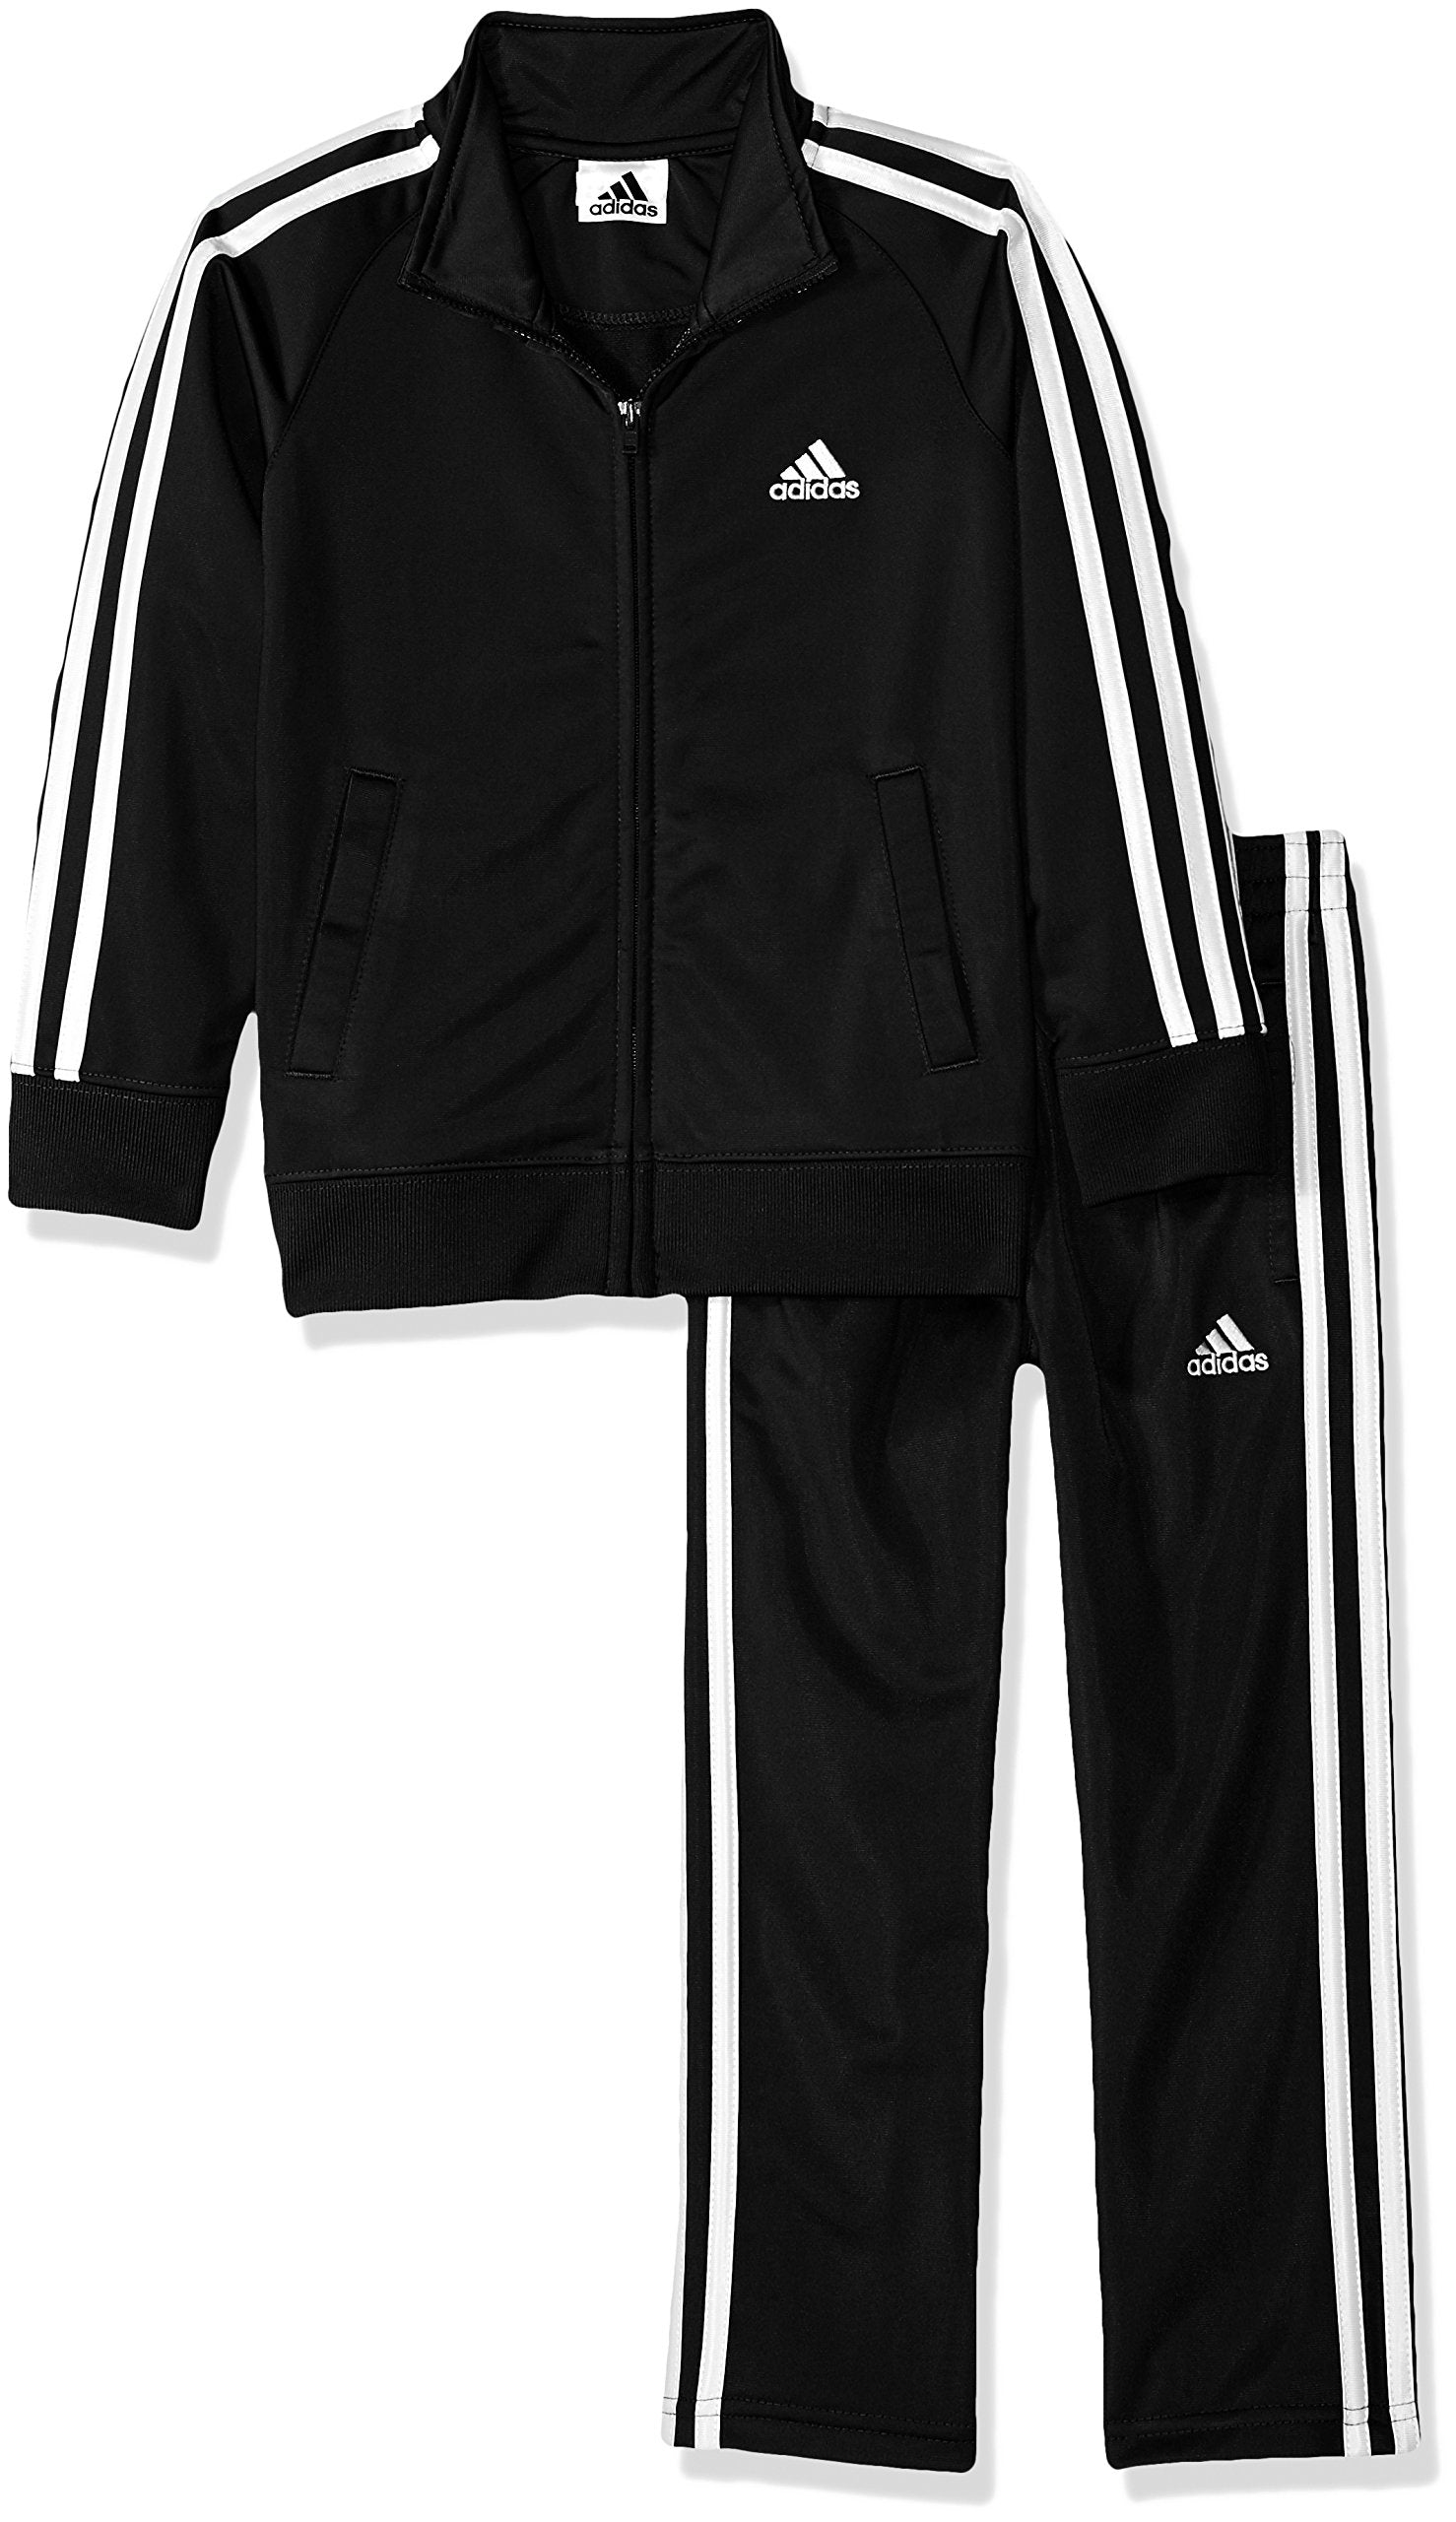 Adidas Boys' Toddler jumpsuit.